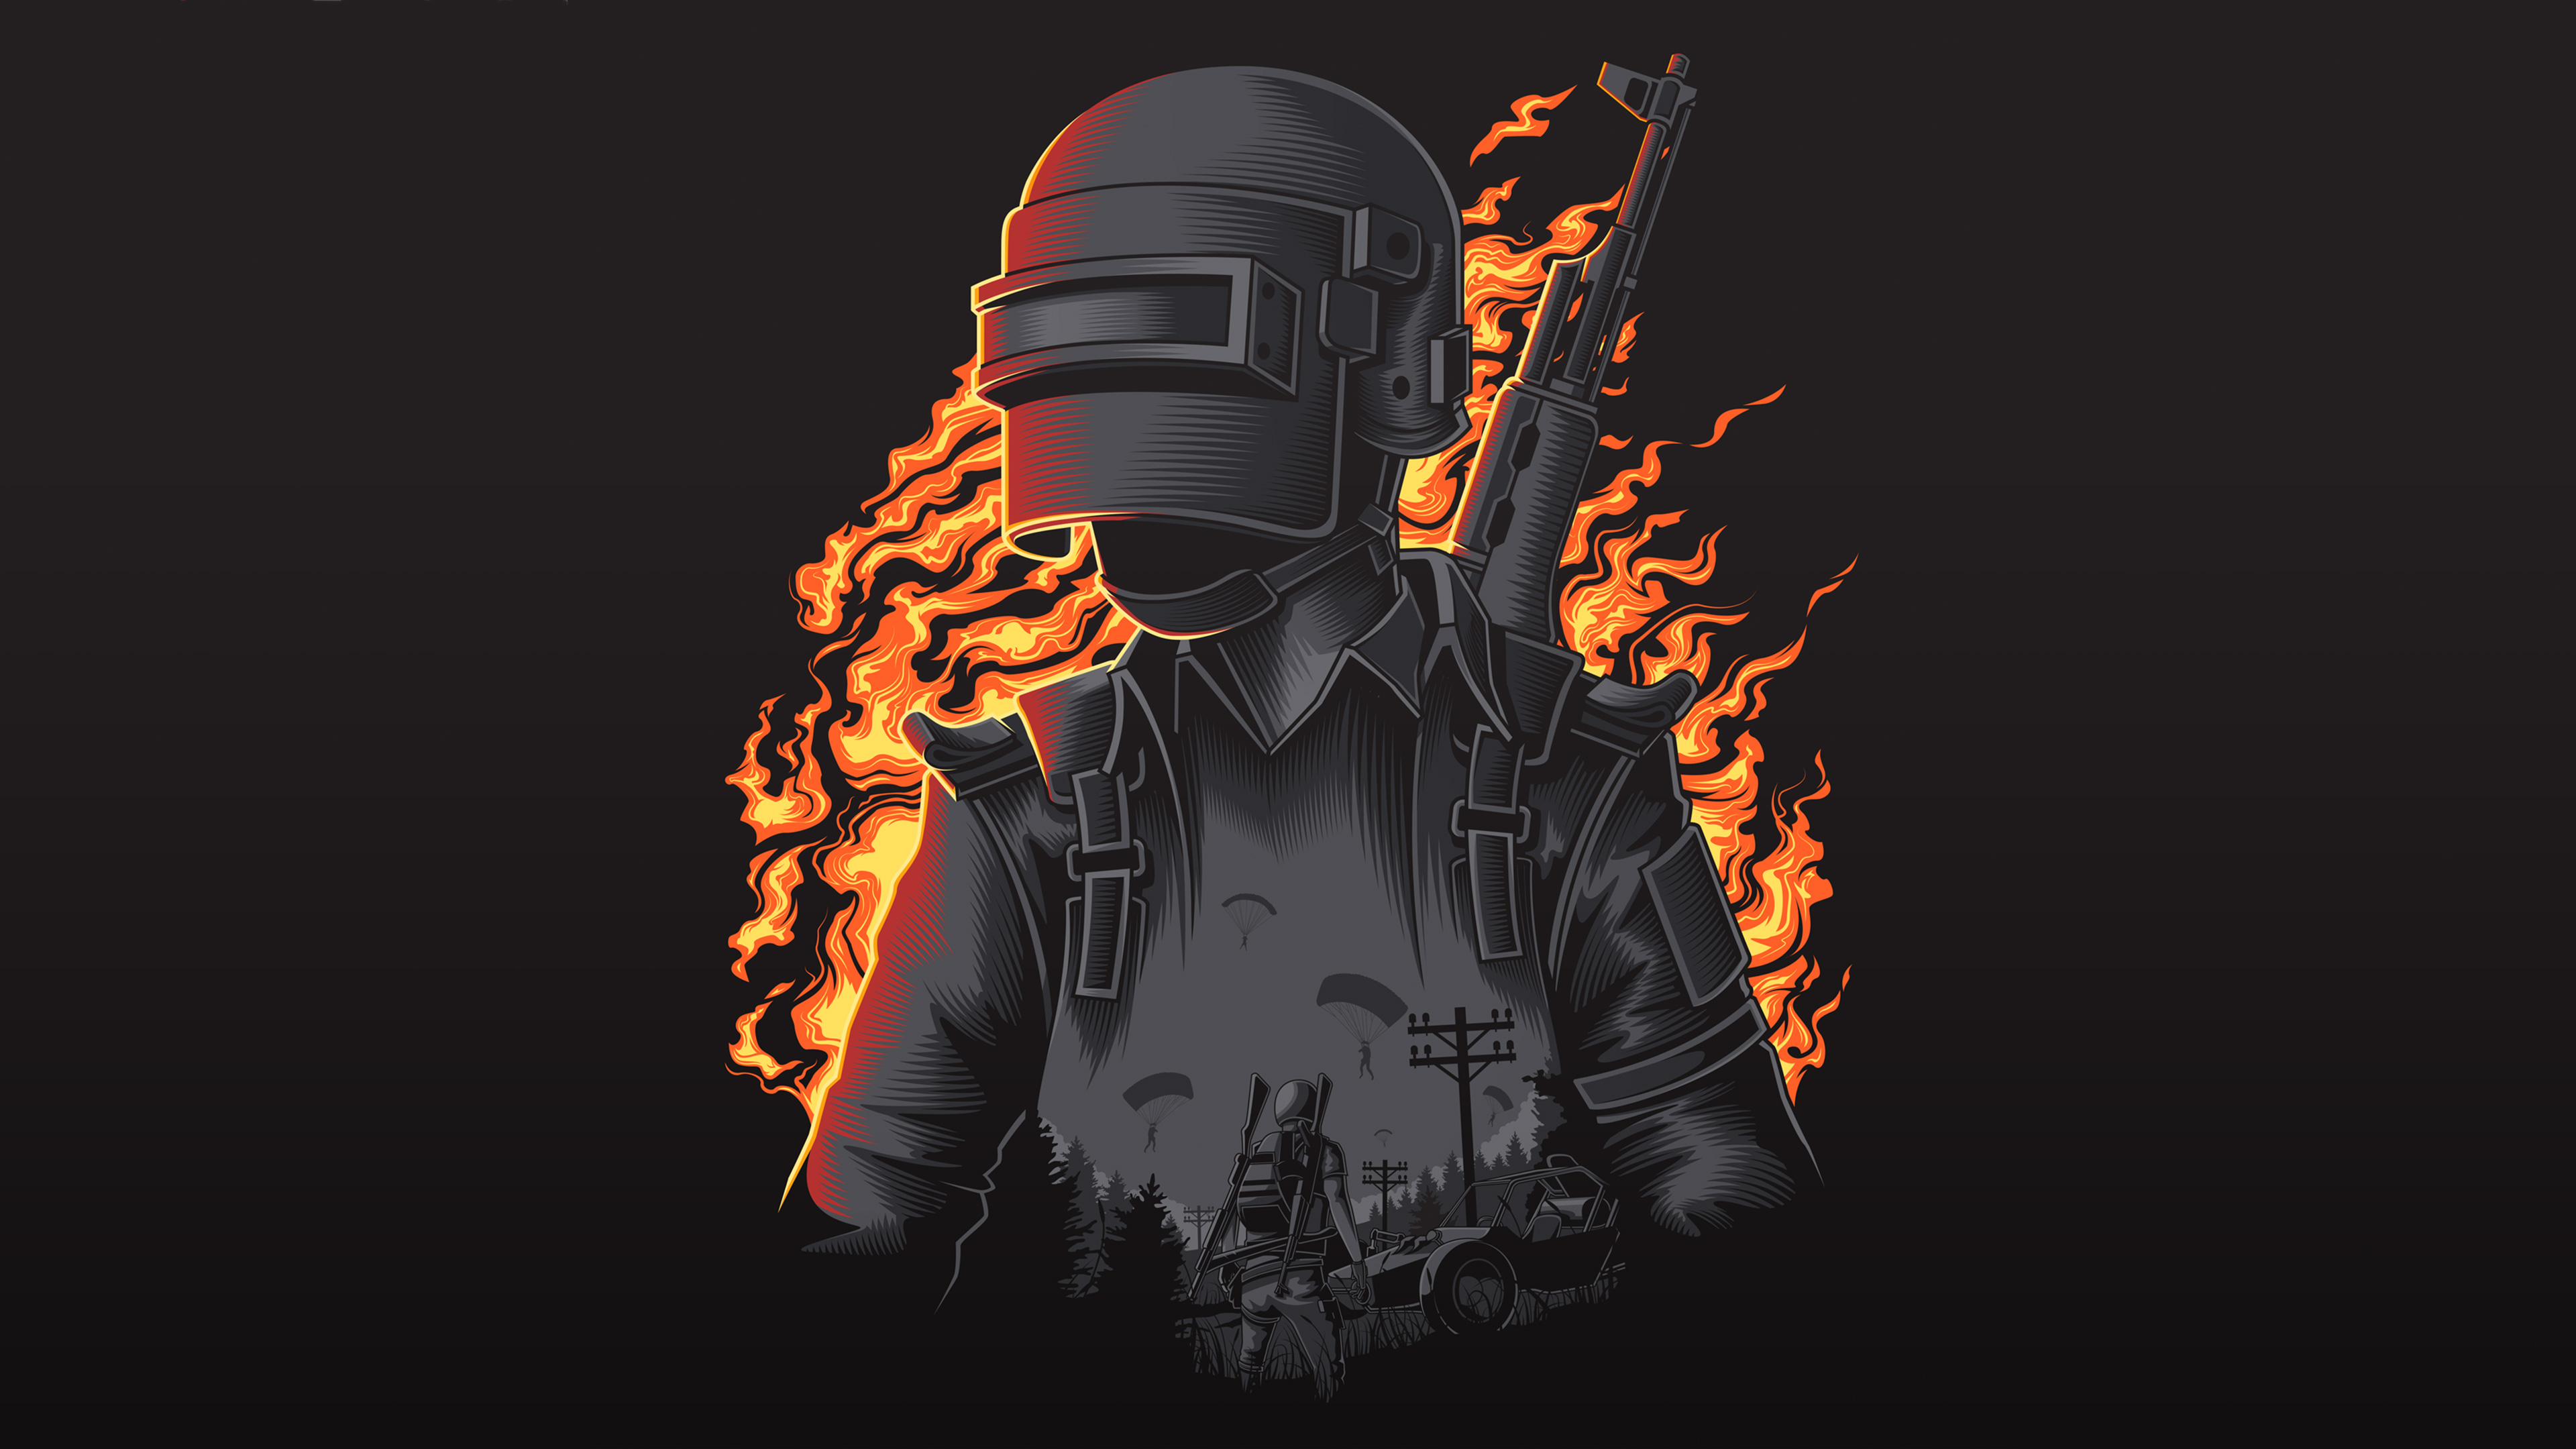 PUBG Wallpaper 4K/HD Of 2019 Download